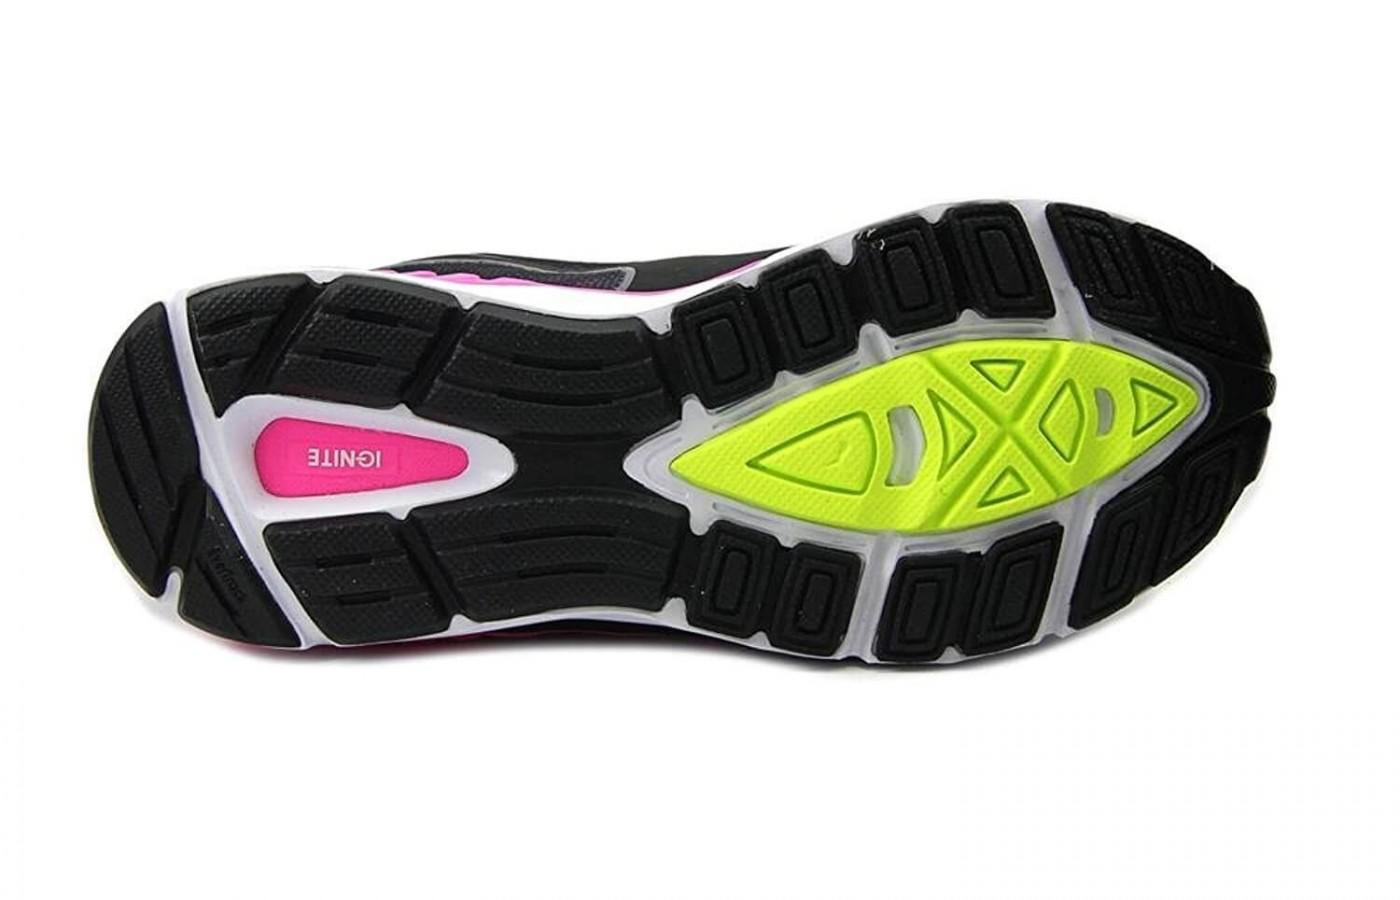 The outsole provides durability and protection